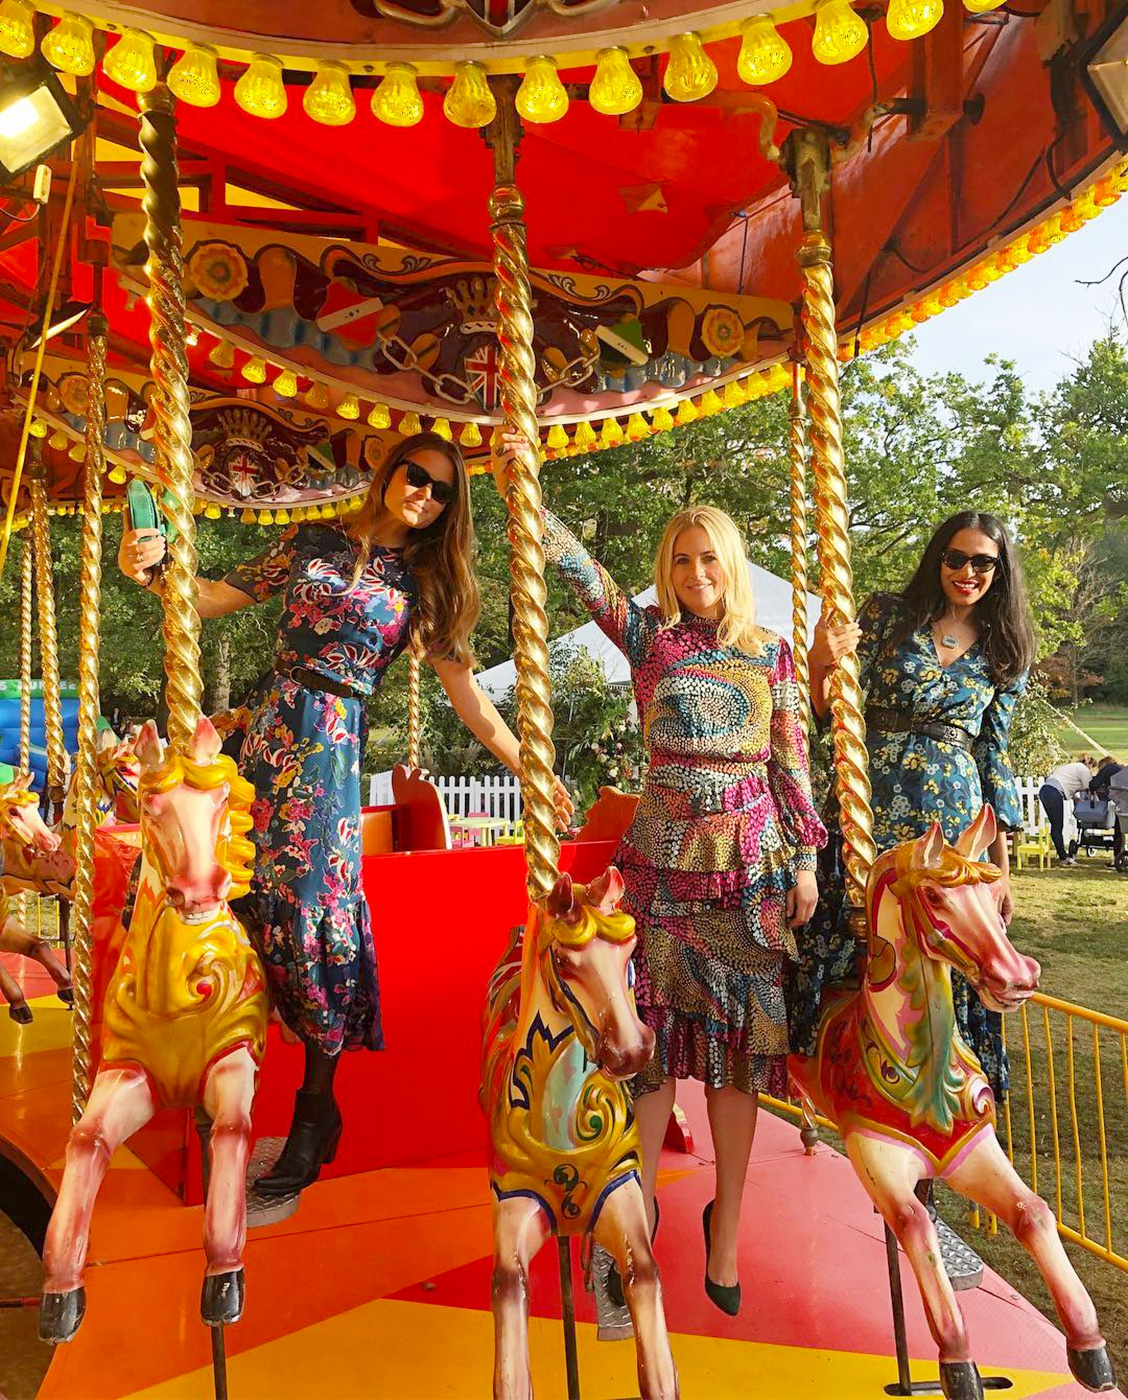 Princess Eugenie, Jack Brooksbank, Wedding - Hotel heiress Irene Forte , TV presenter Marissa Montgomery and designer Saloni Lodha jumped on the colorful carousel at the fairground-themed celebration on Saturday.